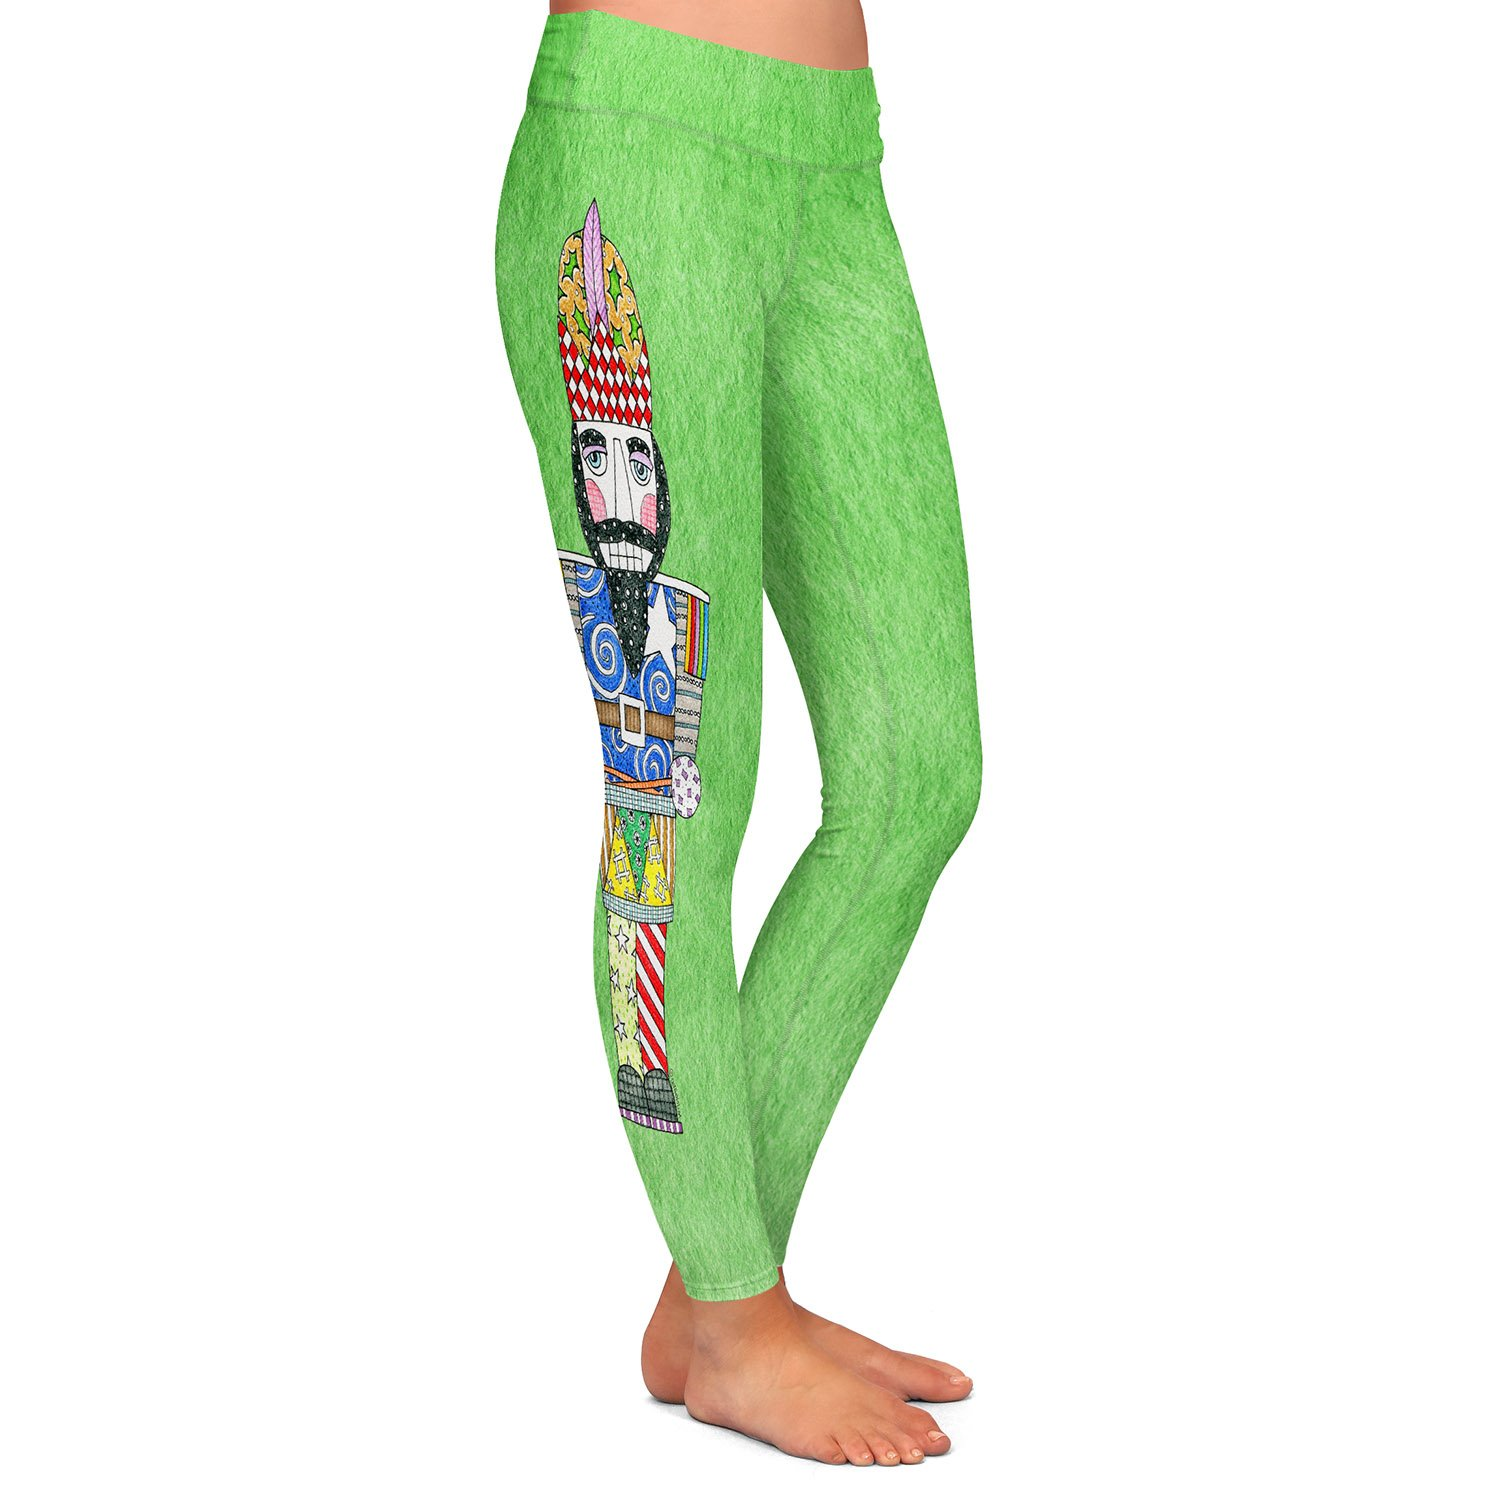 Athletic Yoga Leggings from DiaNoche Designs by Marley Ungaro Nutcracker Green